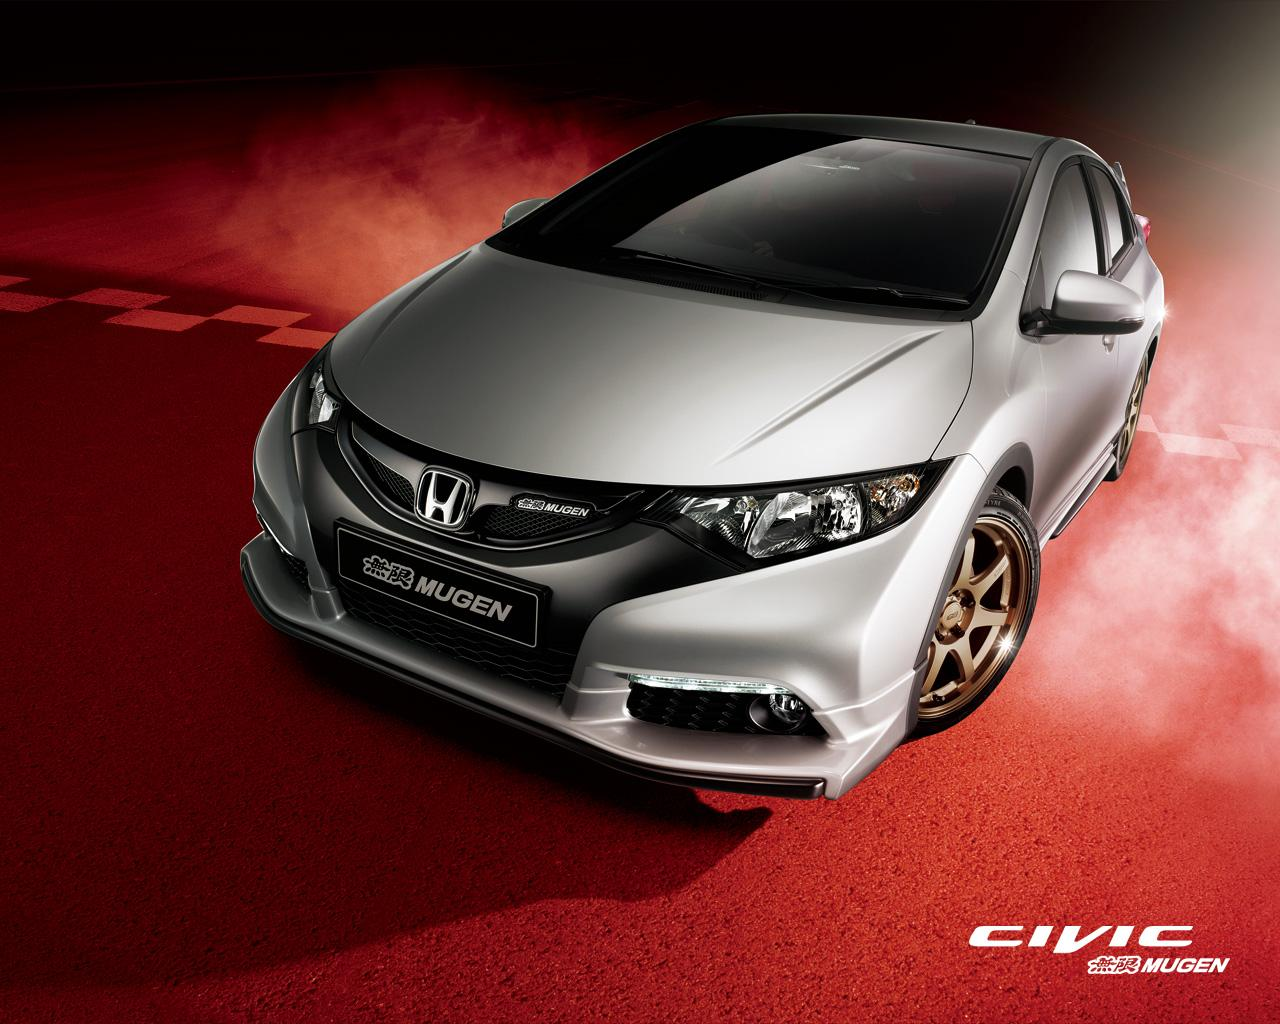 Mugen unveils new styling kit for Honda Civic